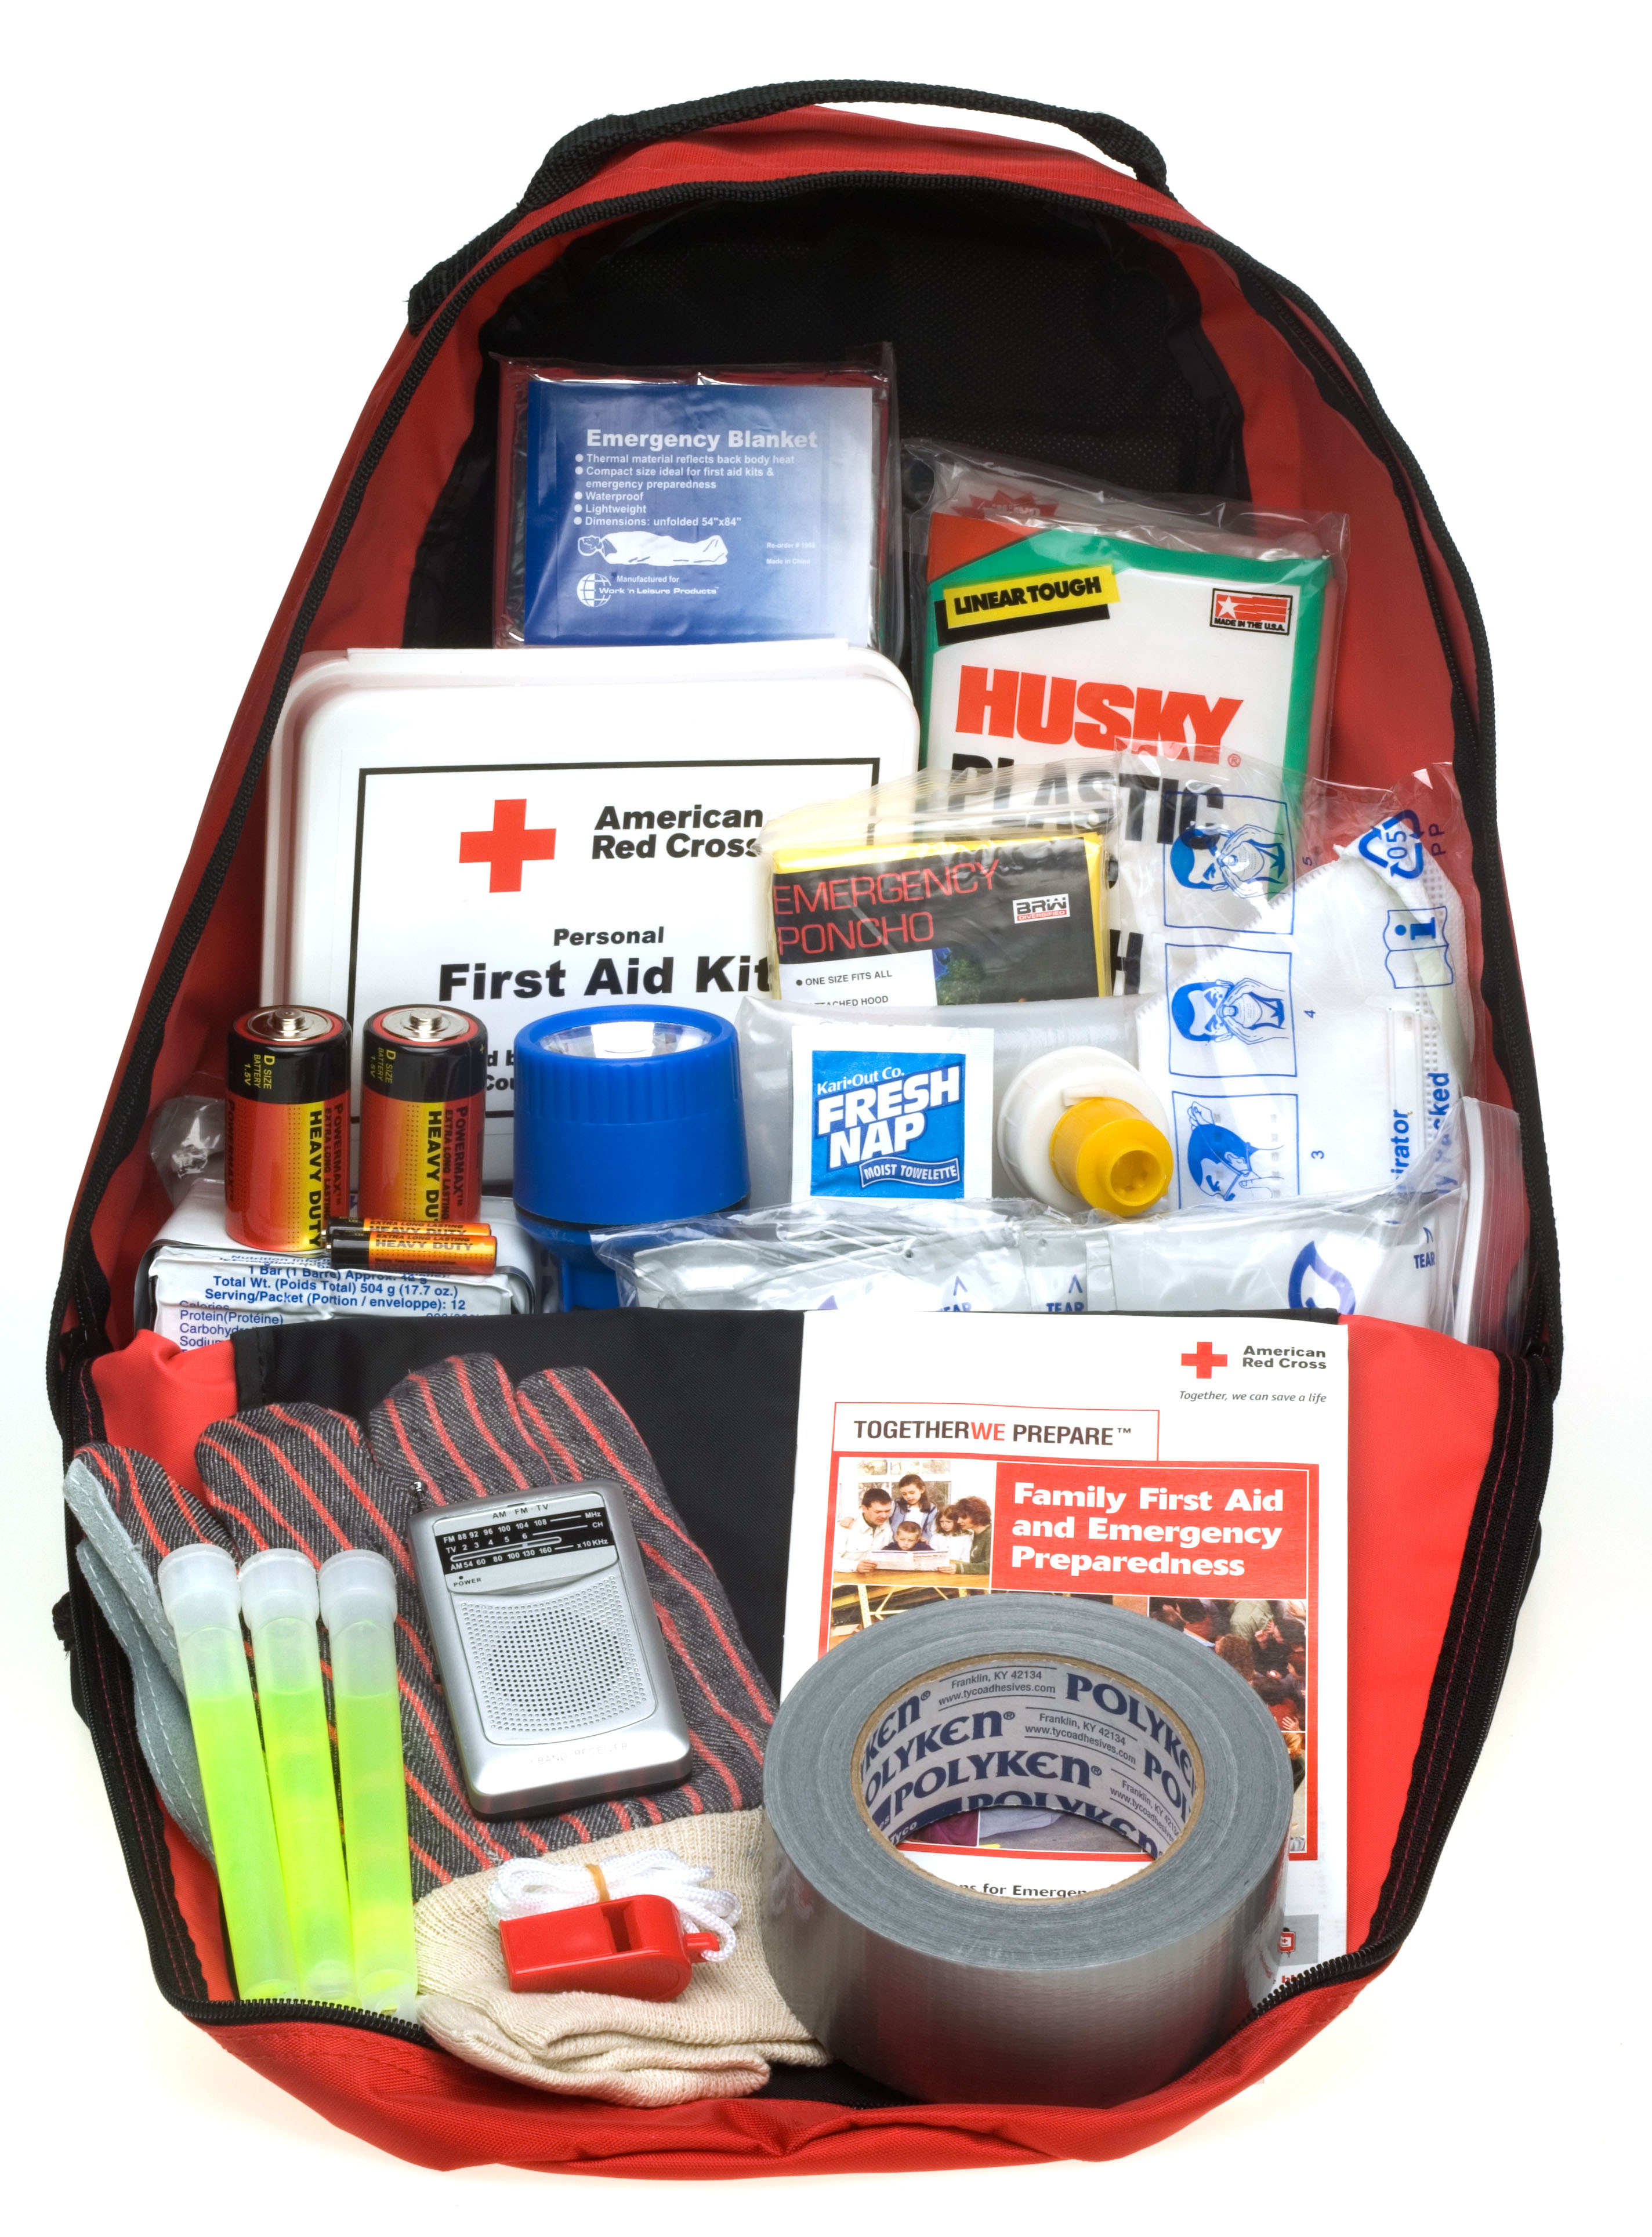 Some Important Additions to your Bug Out Bag